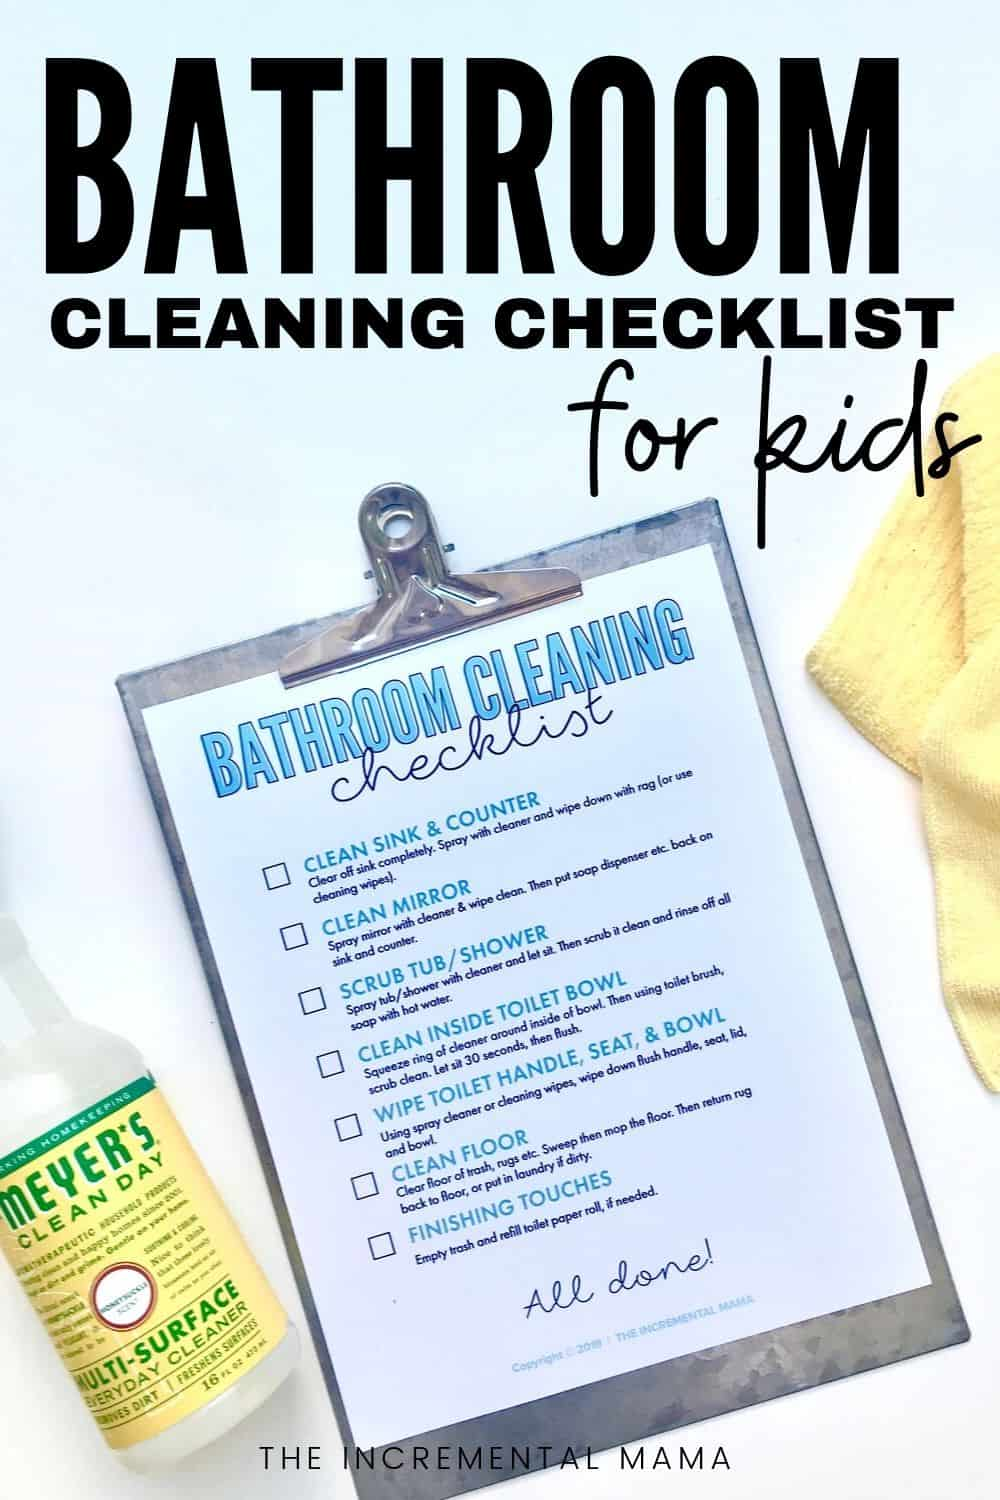 pdf checklist for bathroom cleaning